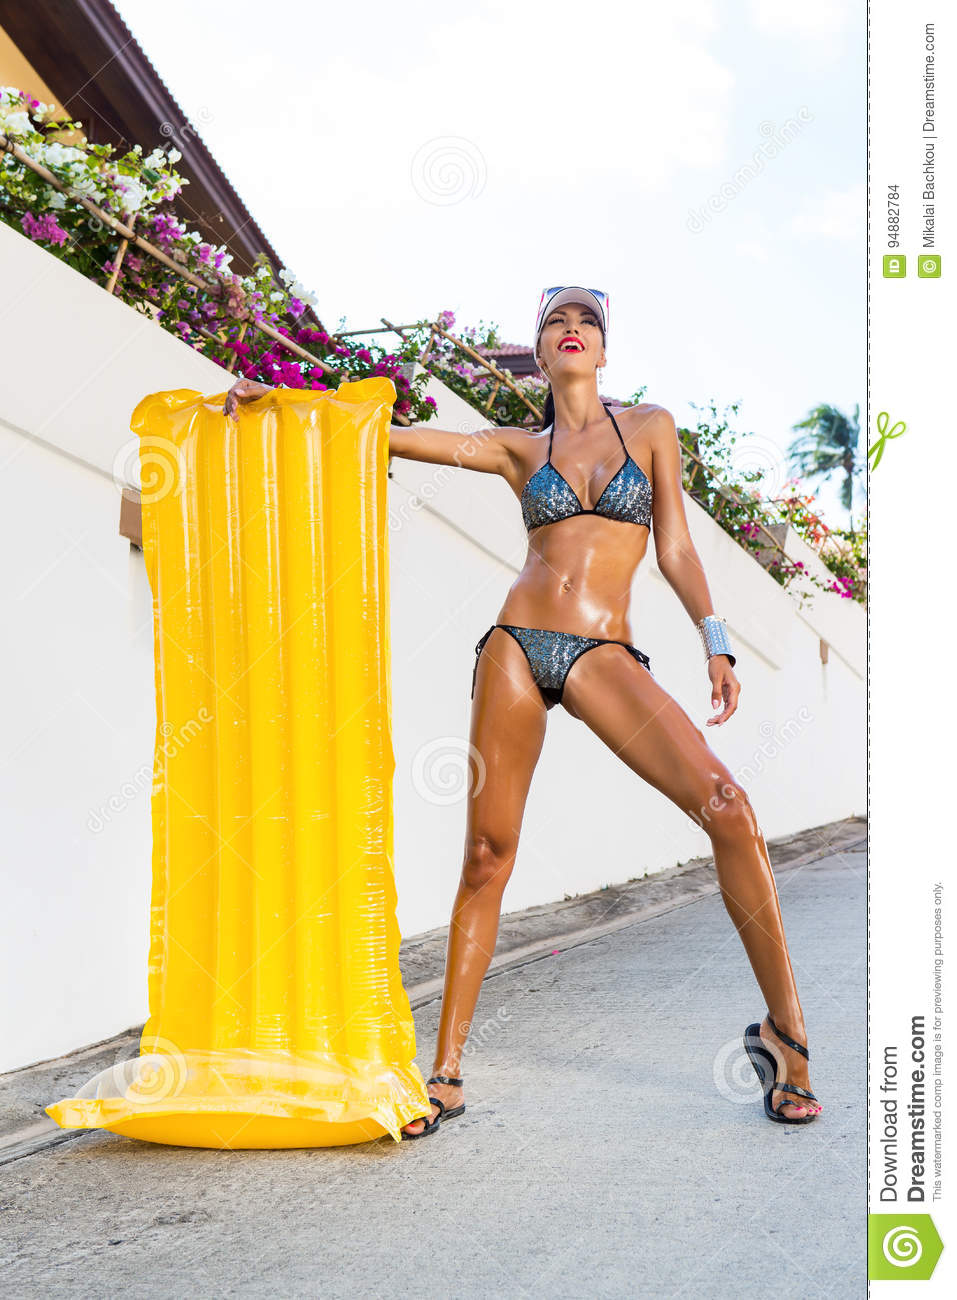 Lady With Long Legs Near White Wall. Stock Photo - Image of ... c04ce94e7